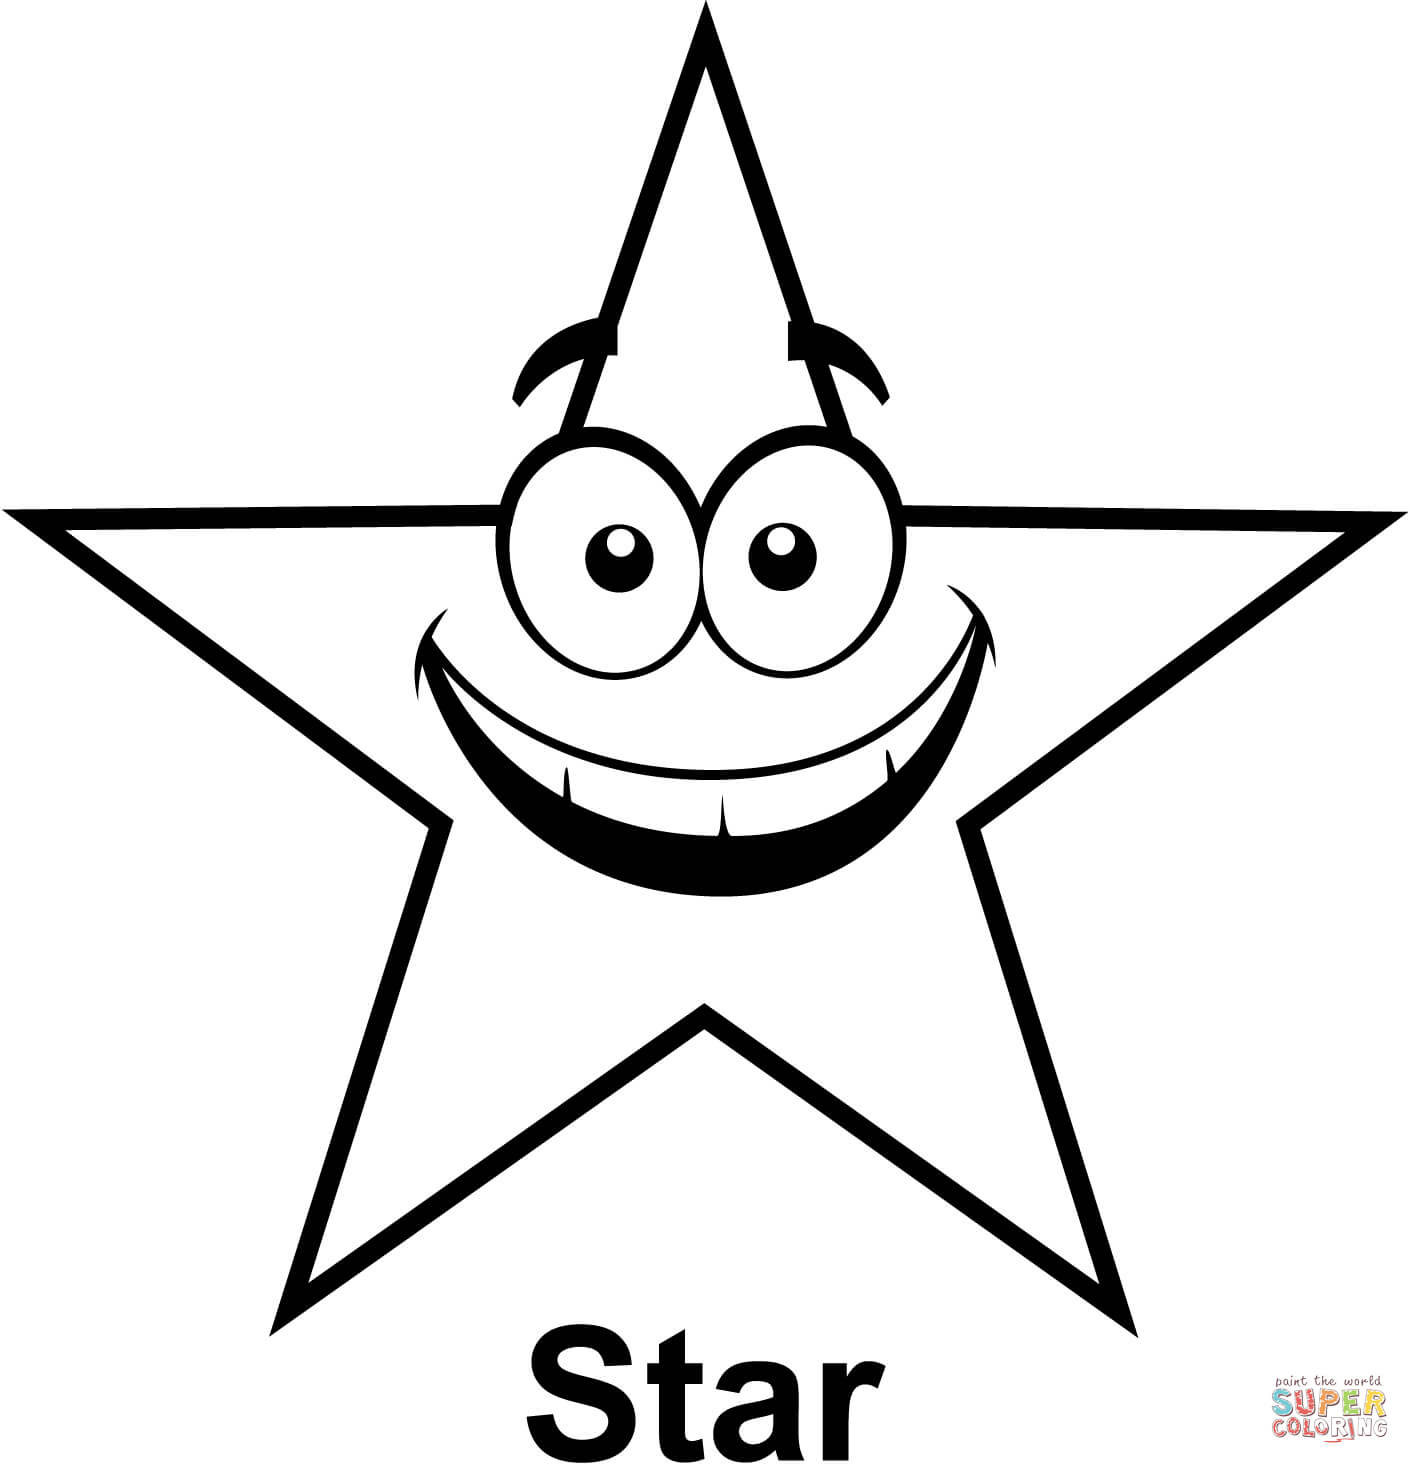 Star coloring, Download Star coloring for free 2019